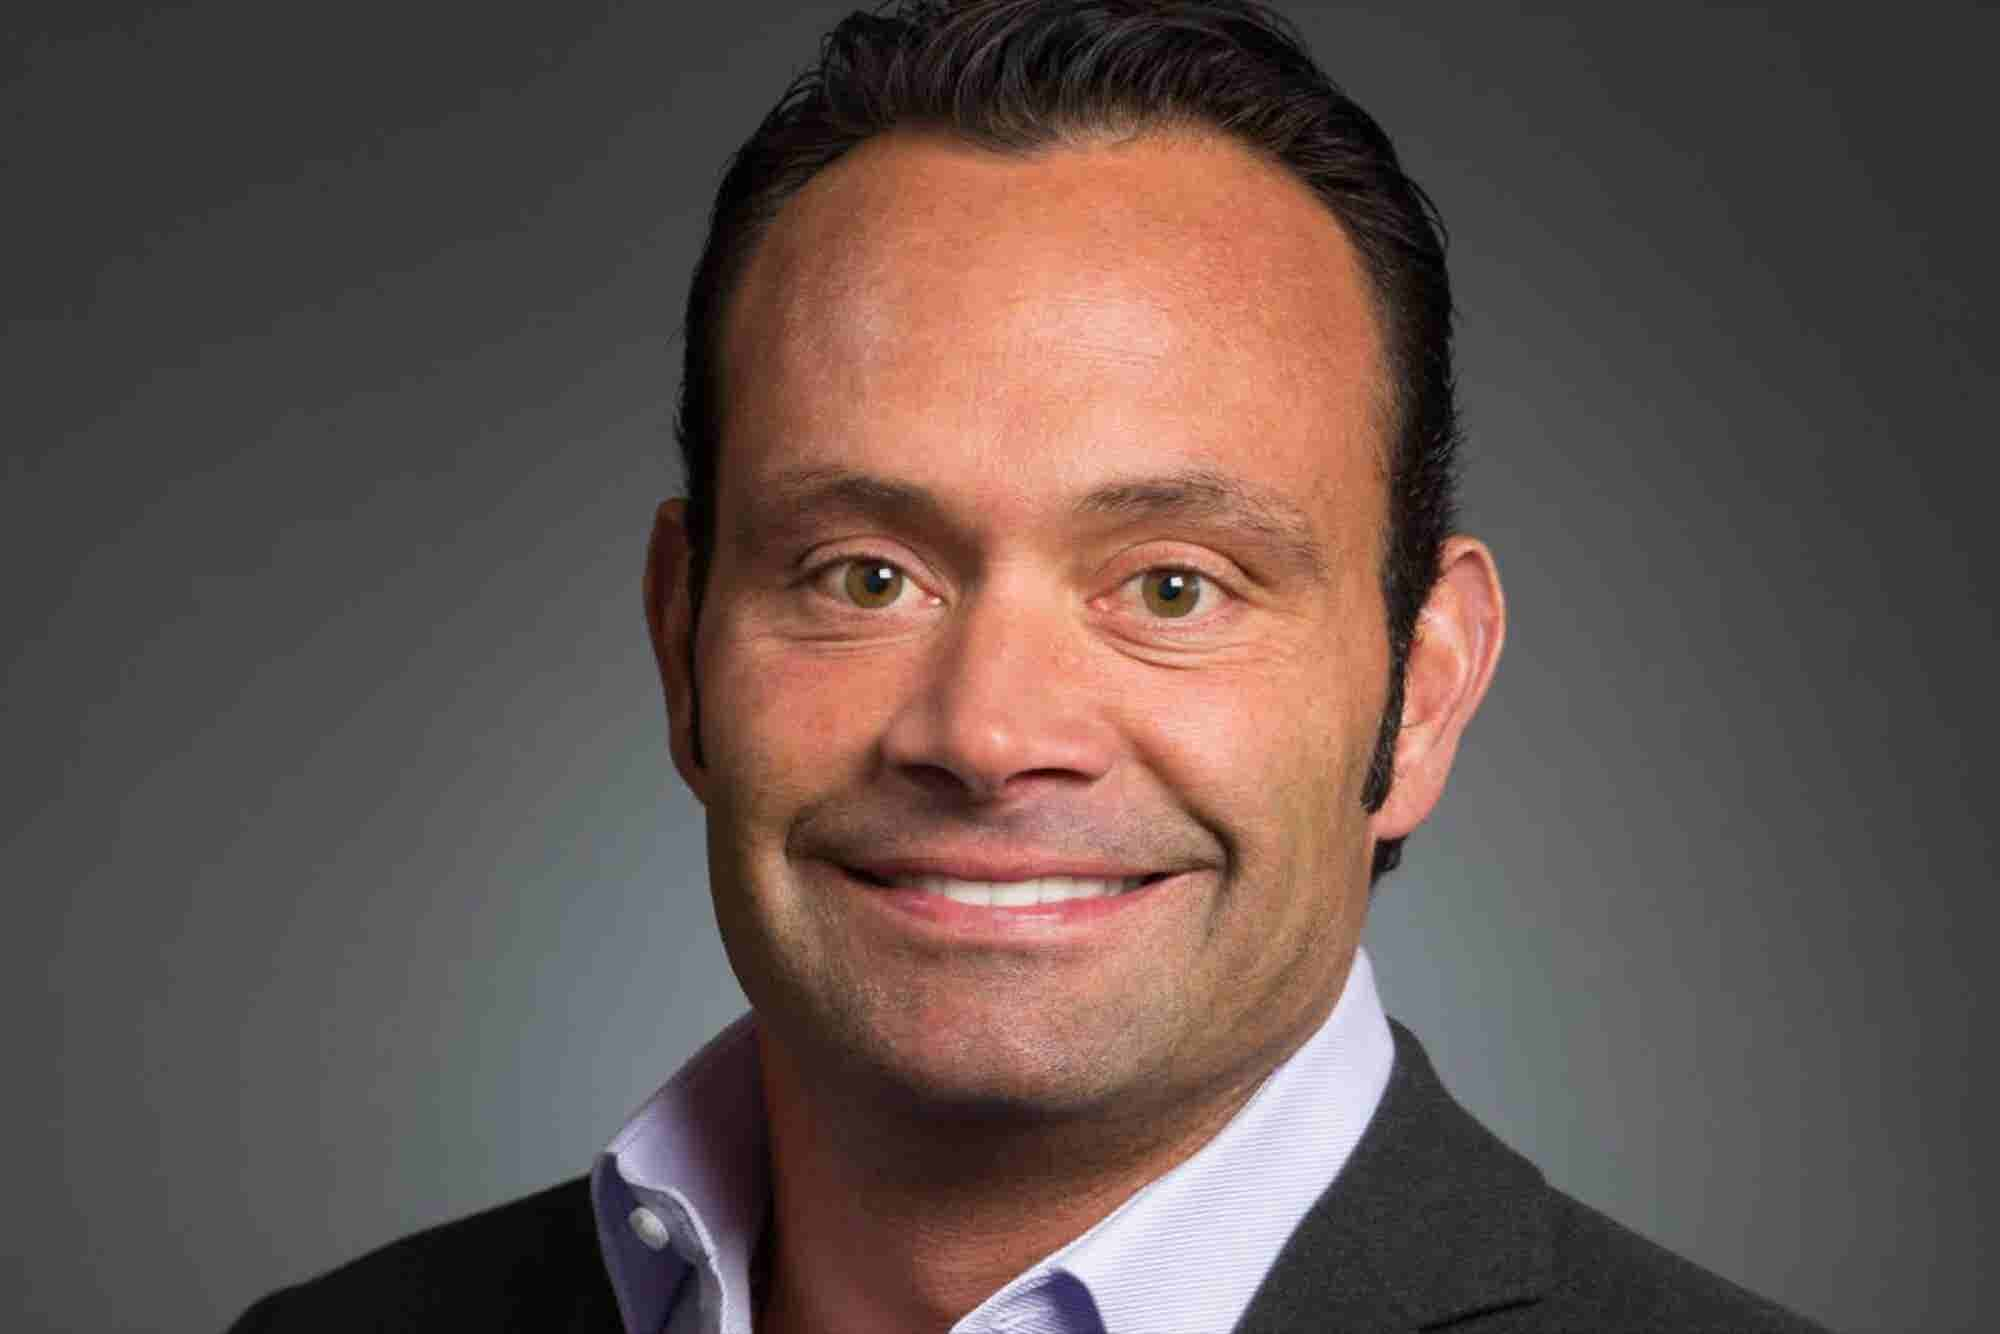 How the CEO of Planet Fitness, Which Counts 10 Million Members, Went From Front Desk Clerk to Top Exec